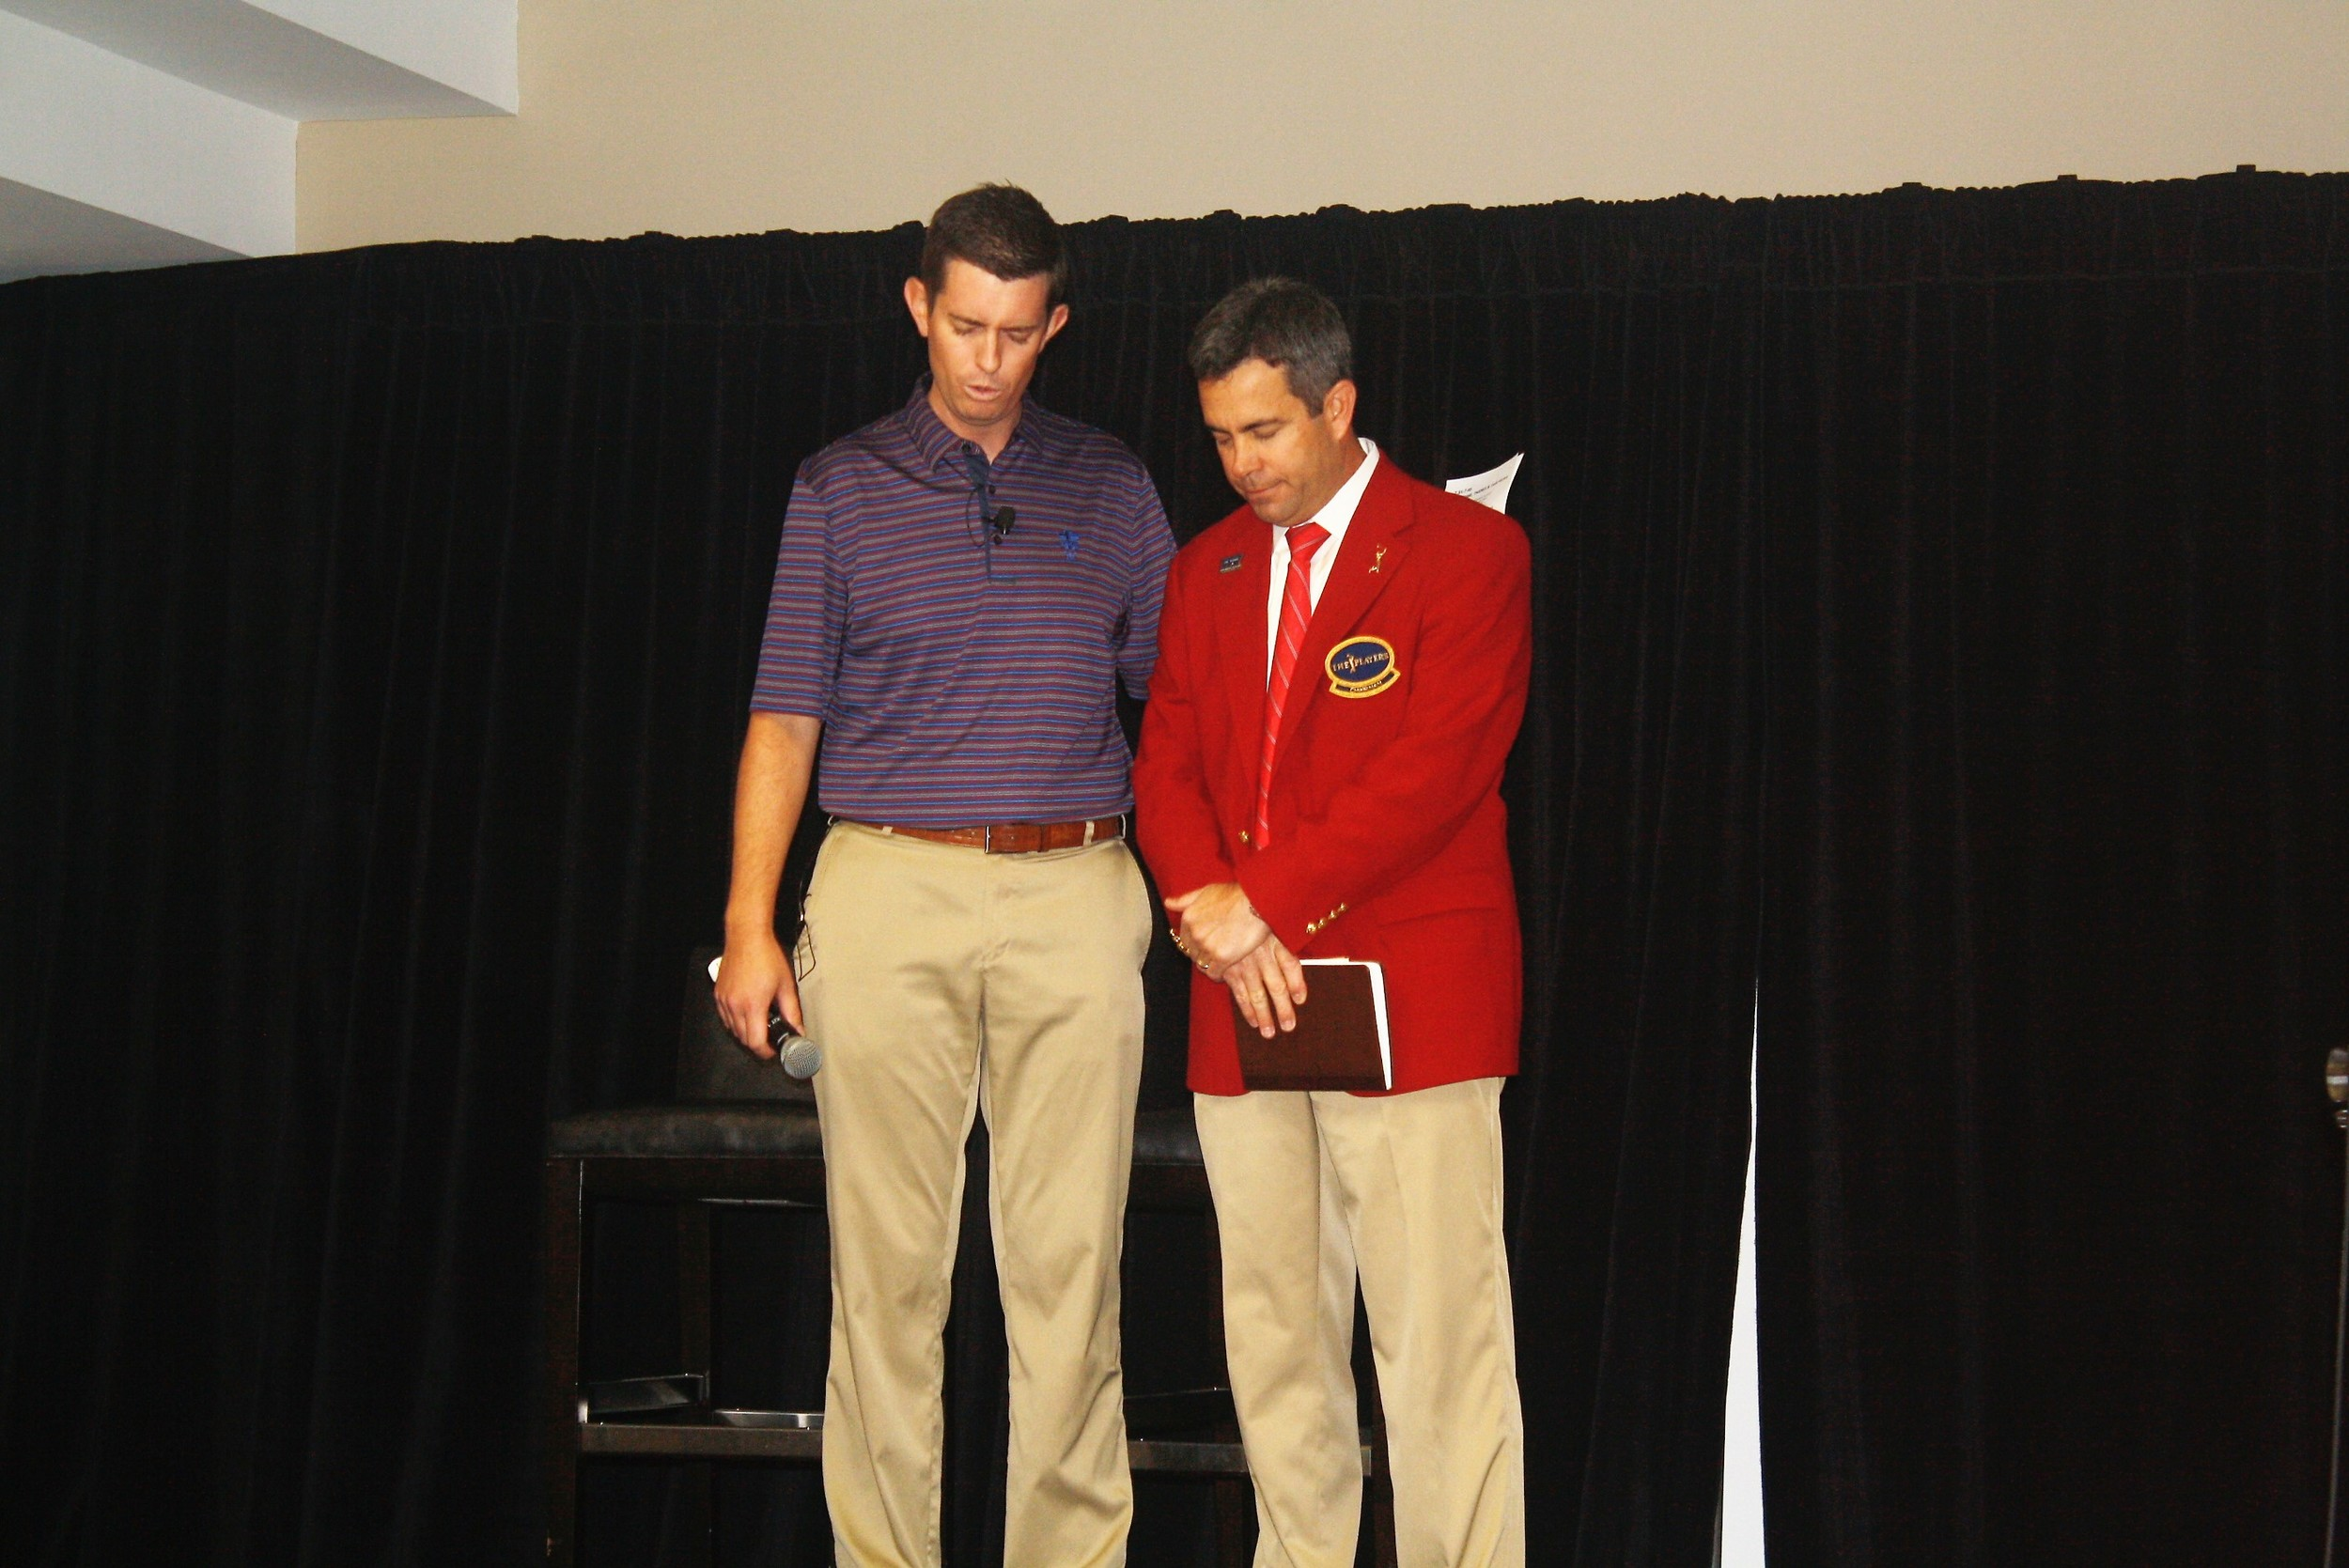 Matt Roop leads guests in prayer for Tournament Chairman Kevin English and THE PLAYERS' 2,000 volunteers.